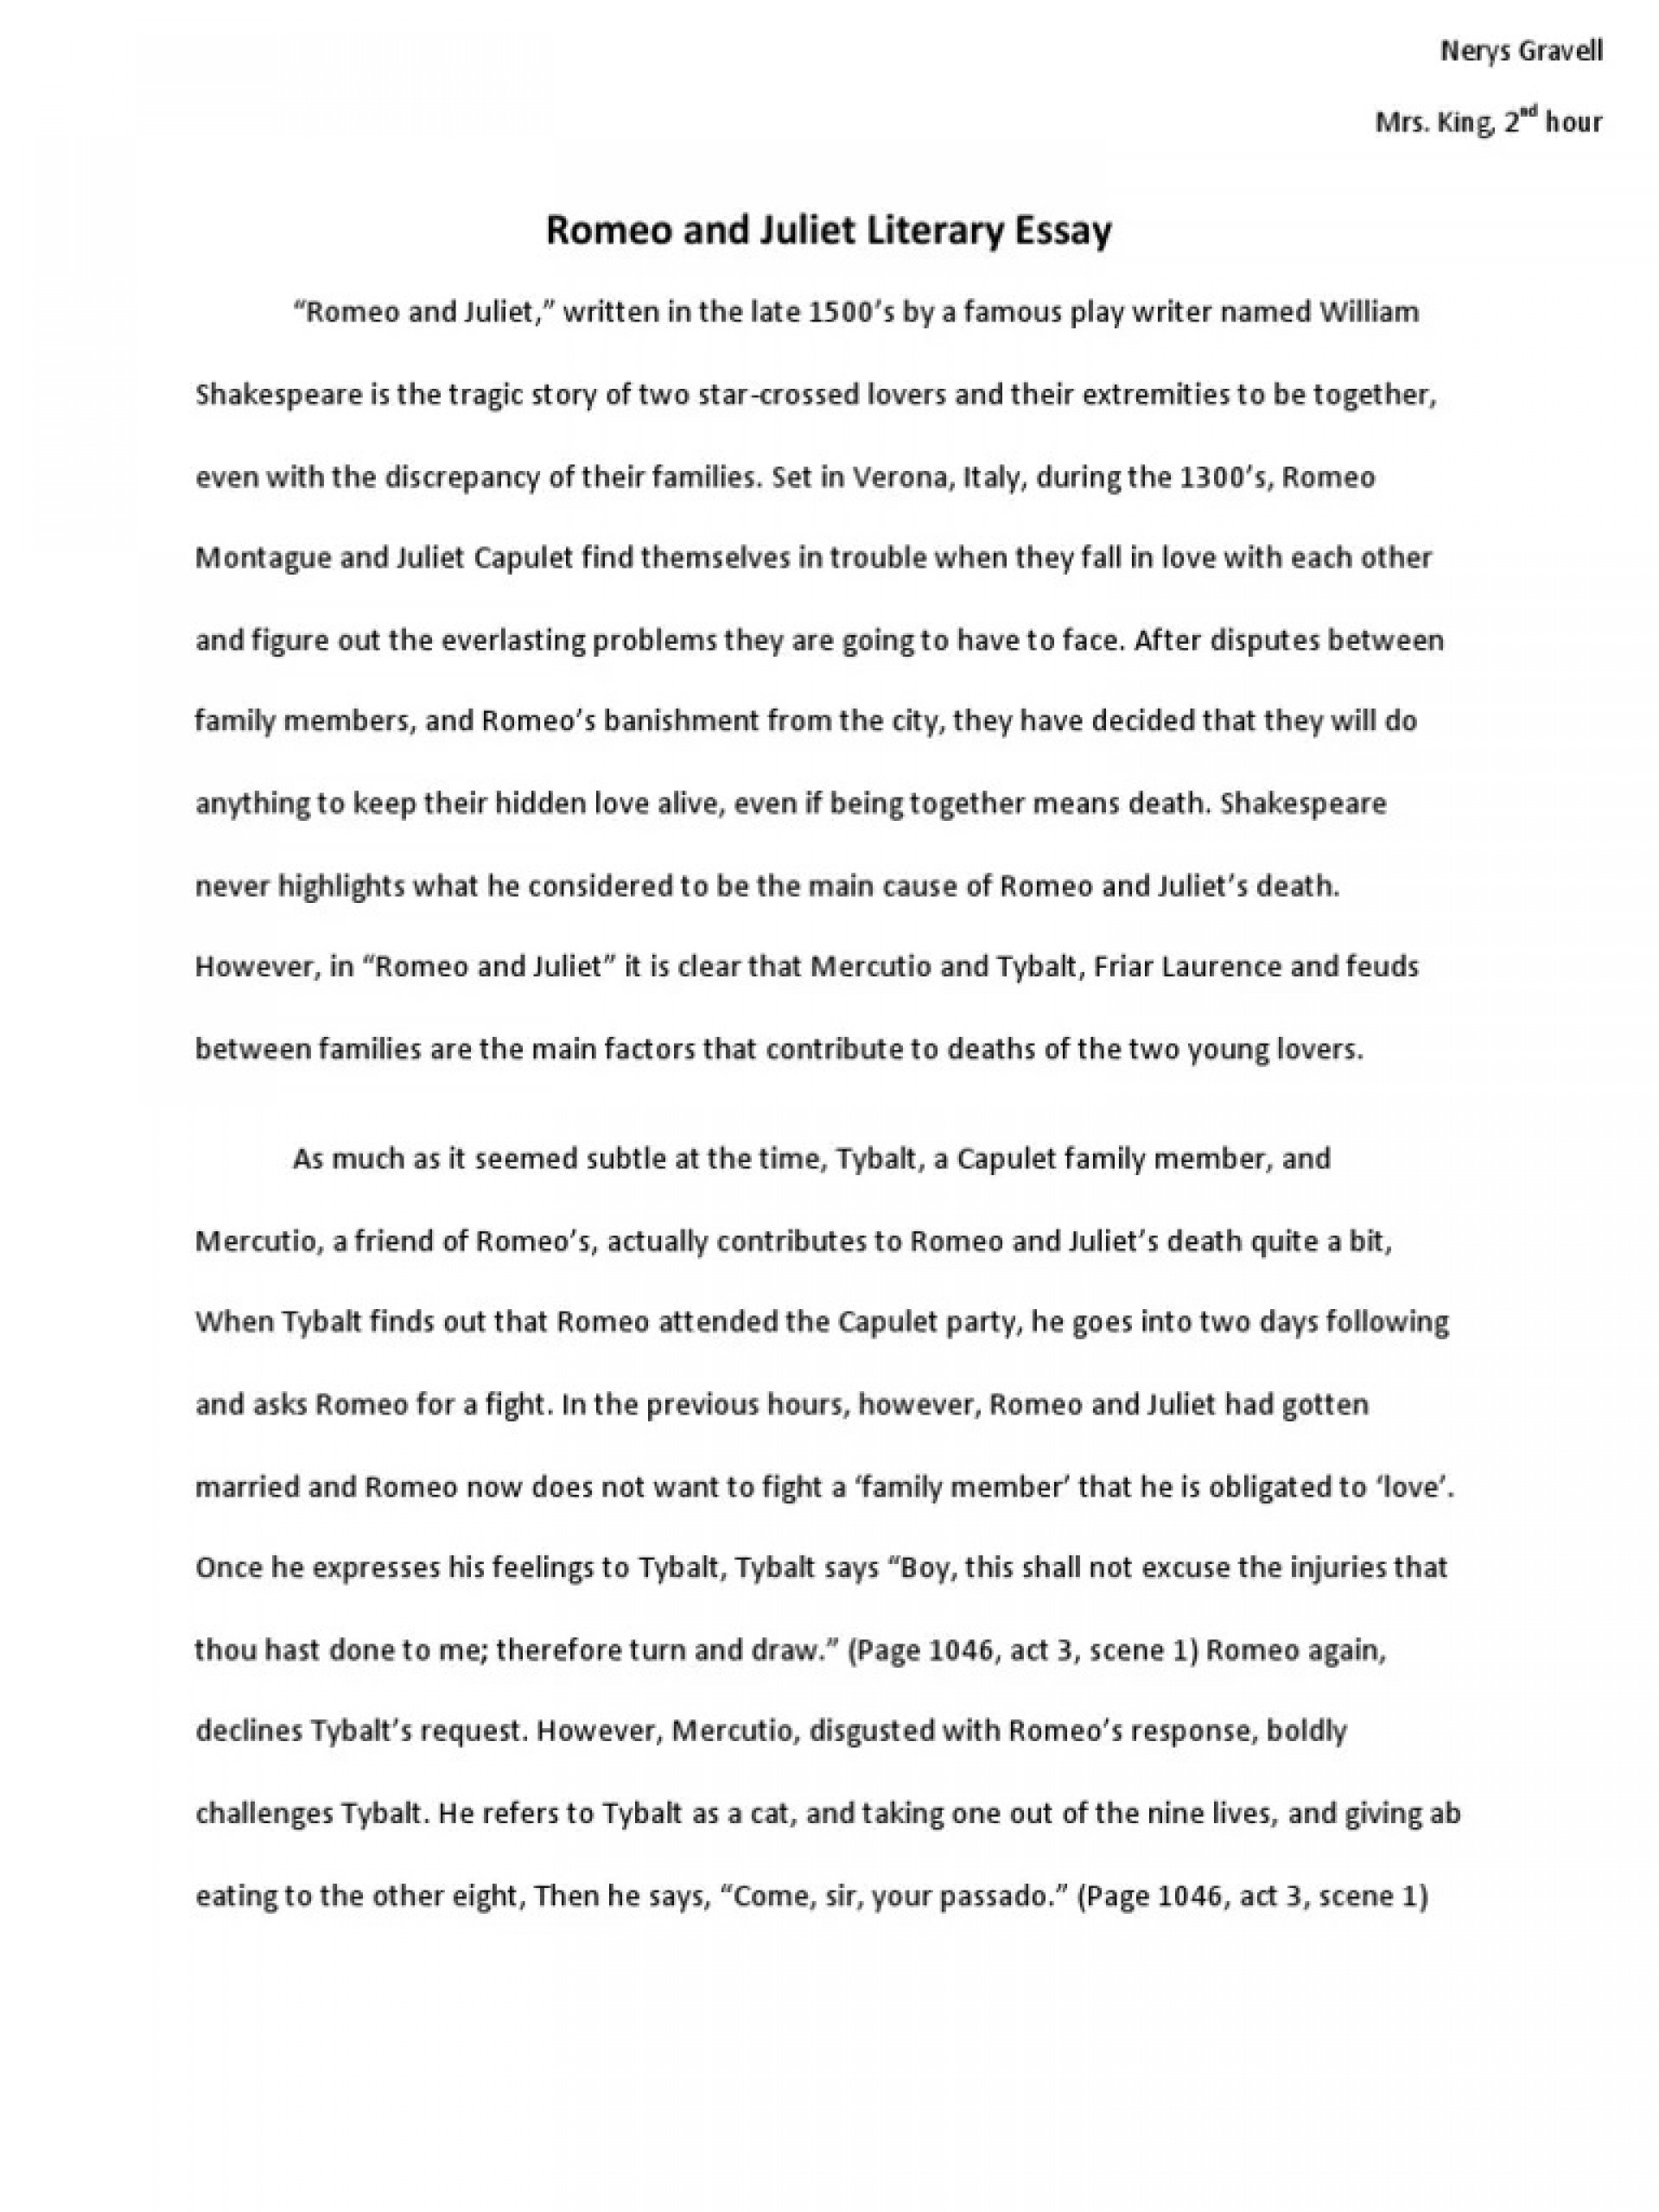 004 Impressive Romeo And Juliet Essay Idea  Who I Responsible For Juliet' Death Introduction Hook Question Pdf1920